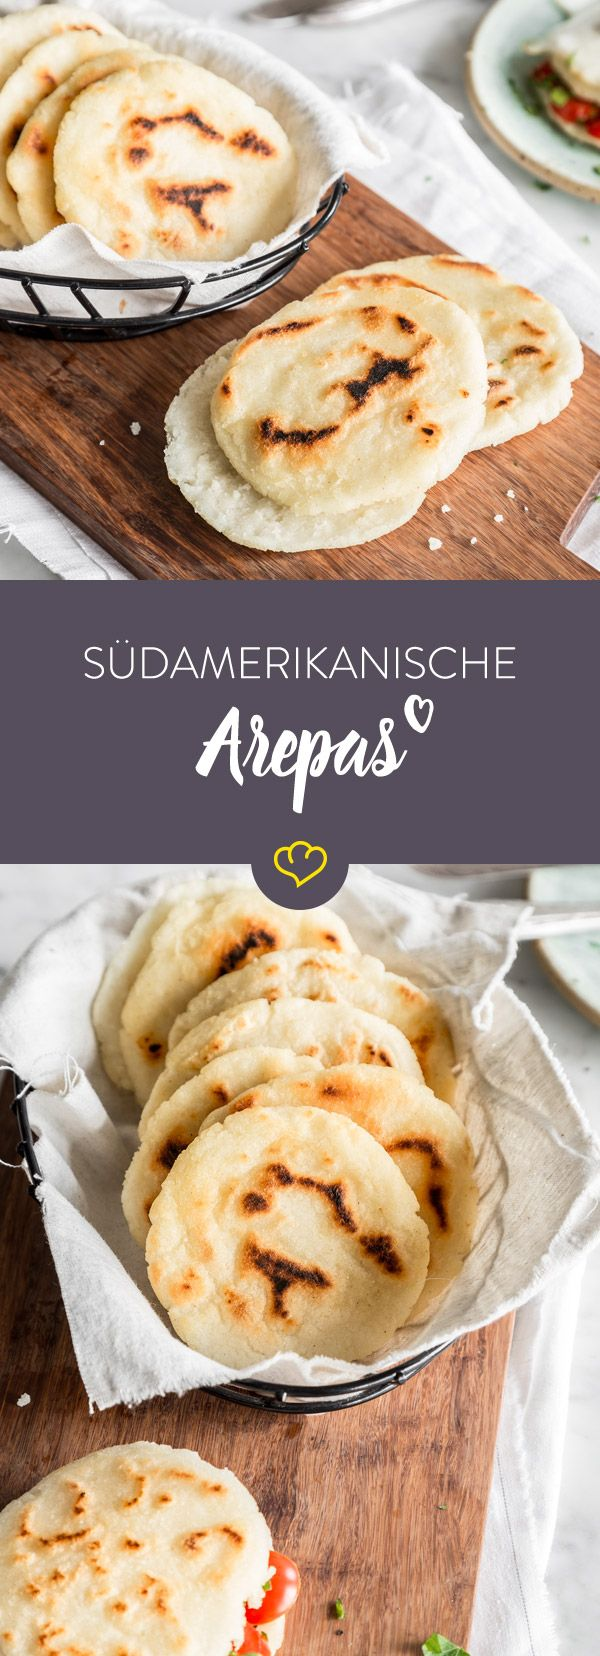 Photo of Arepas: South American freshly baked from corn flour